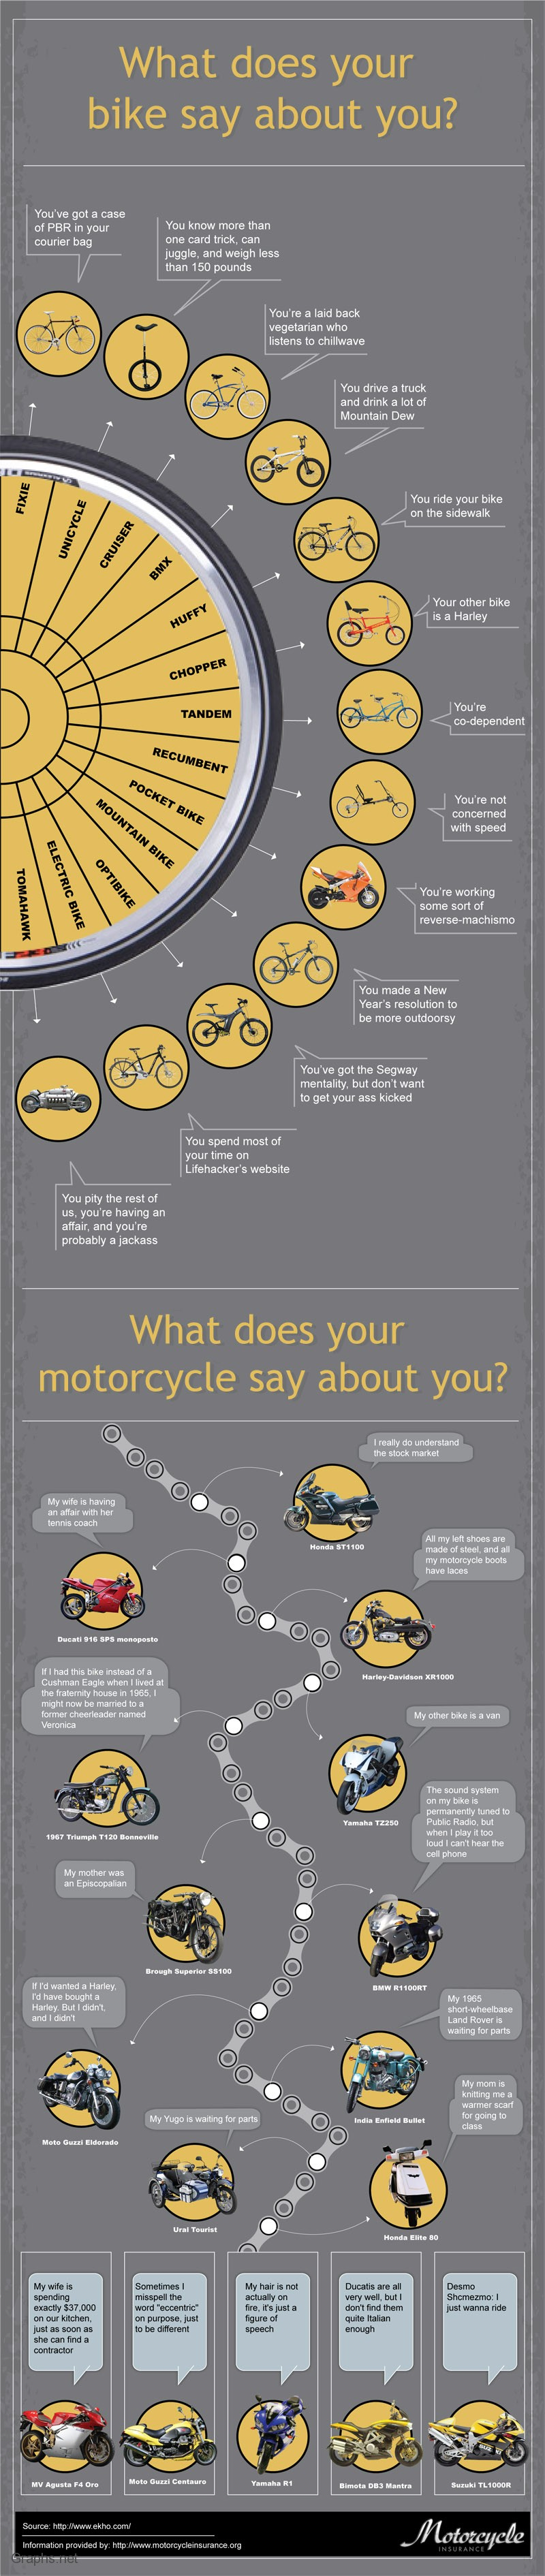 What your bike says about you